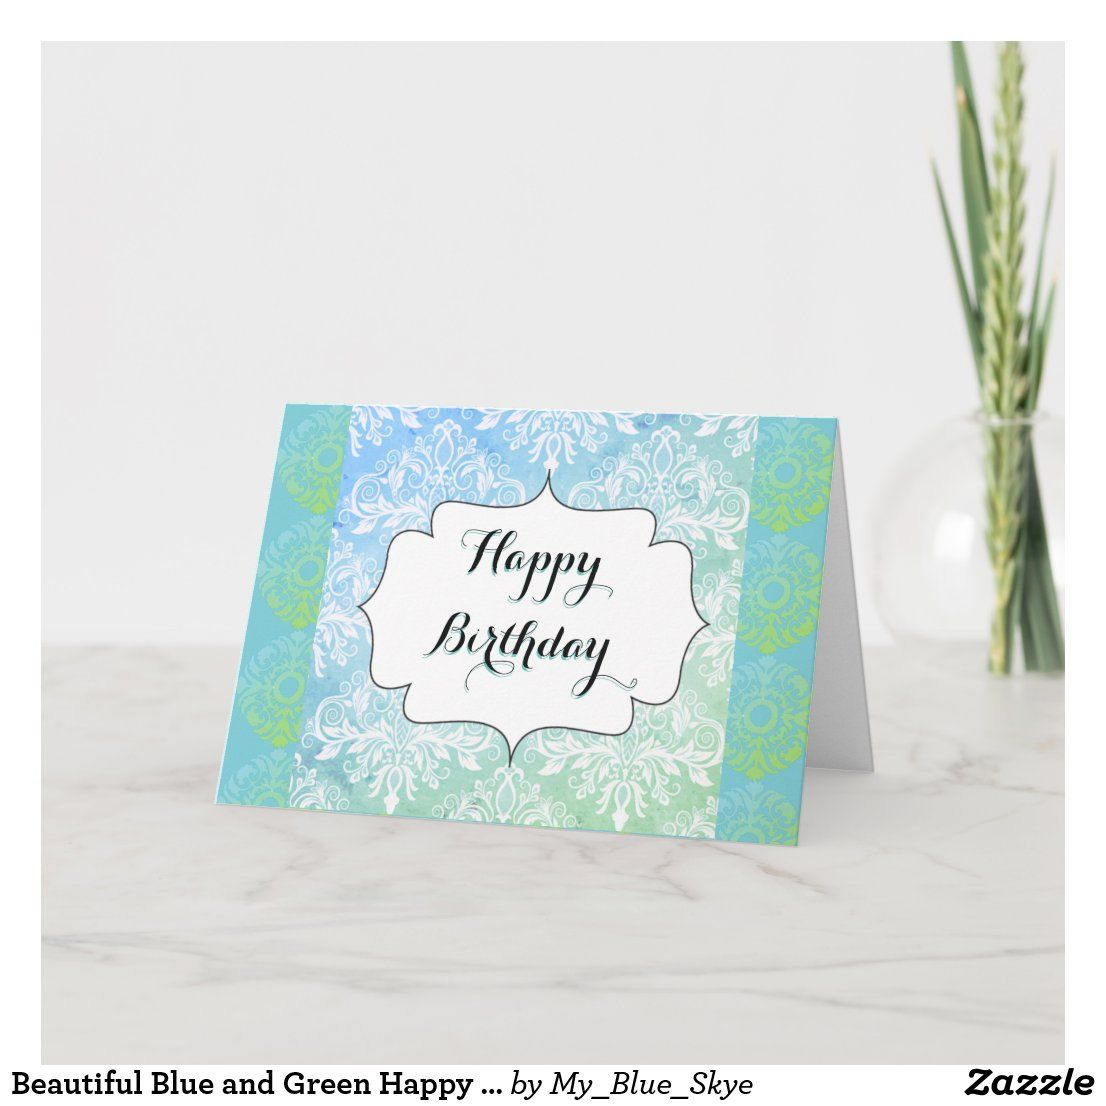 Beautiful Blue And Green Happy Birthday Card Zazzle Com Happy Birthday Cards Birthday Cards Vintage Easter Cards